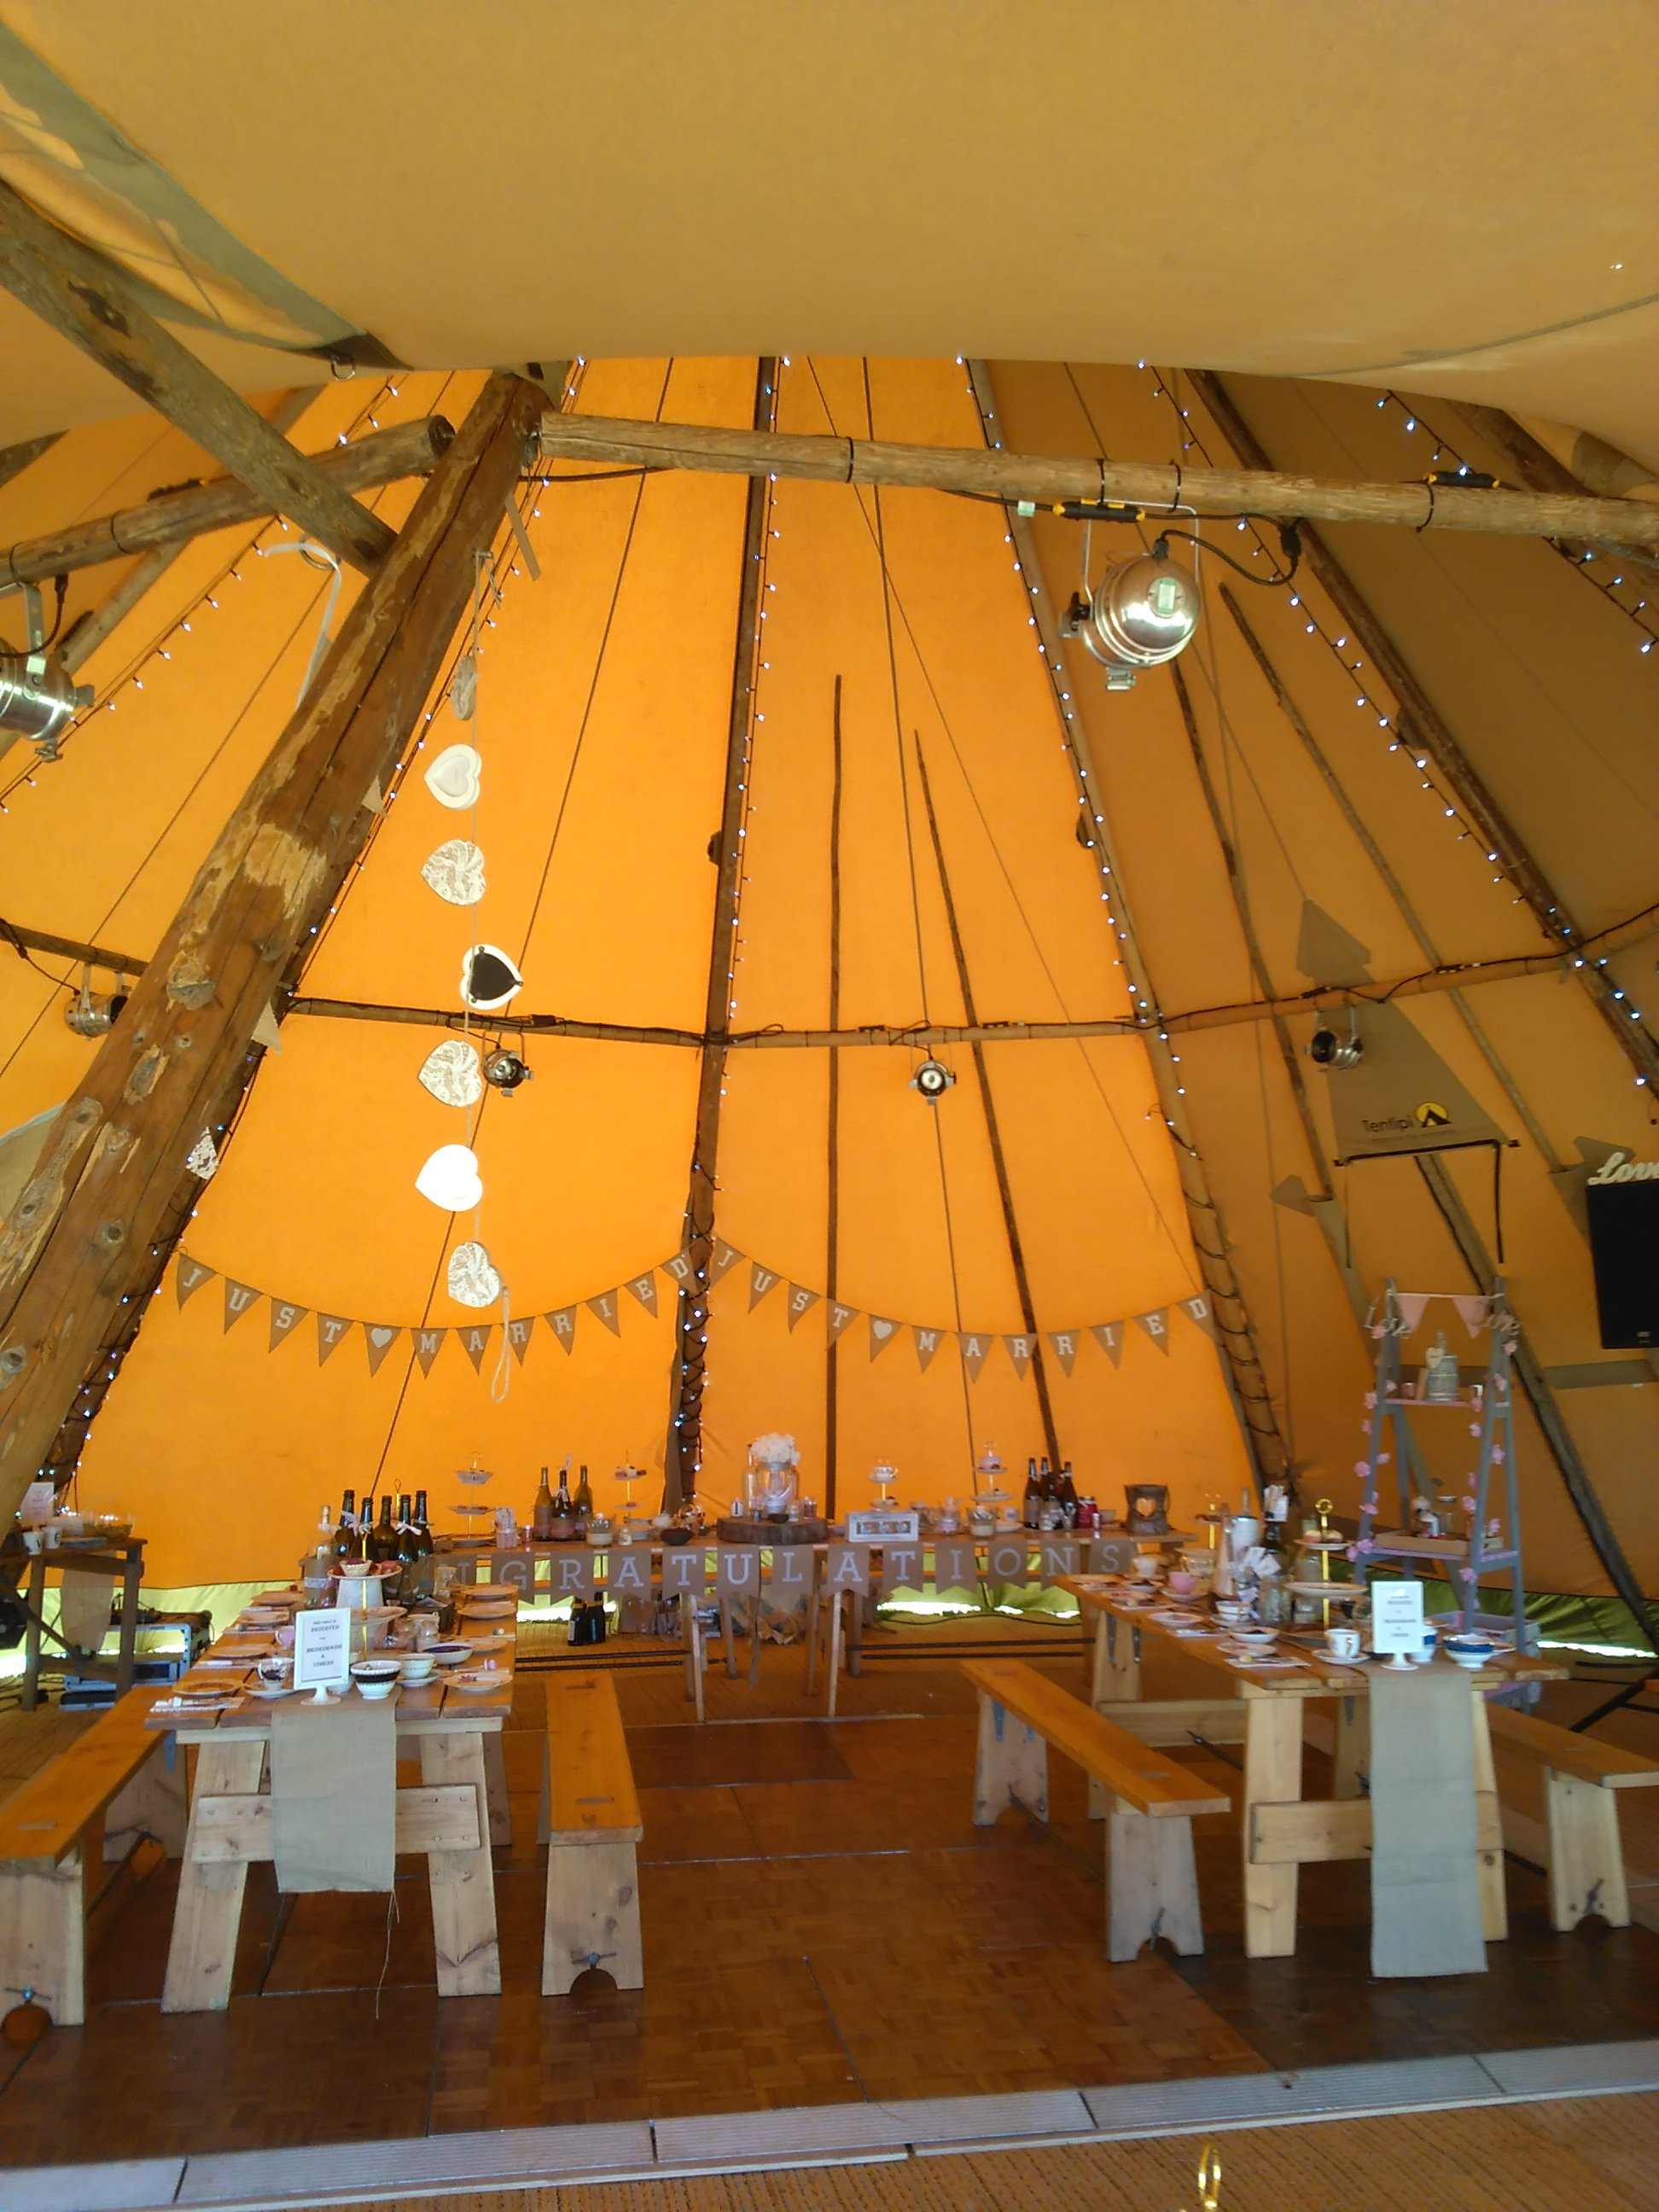 Tea party in a Tepee